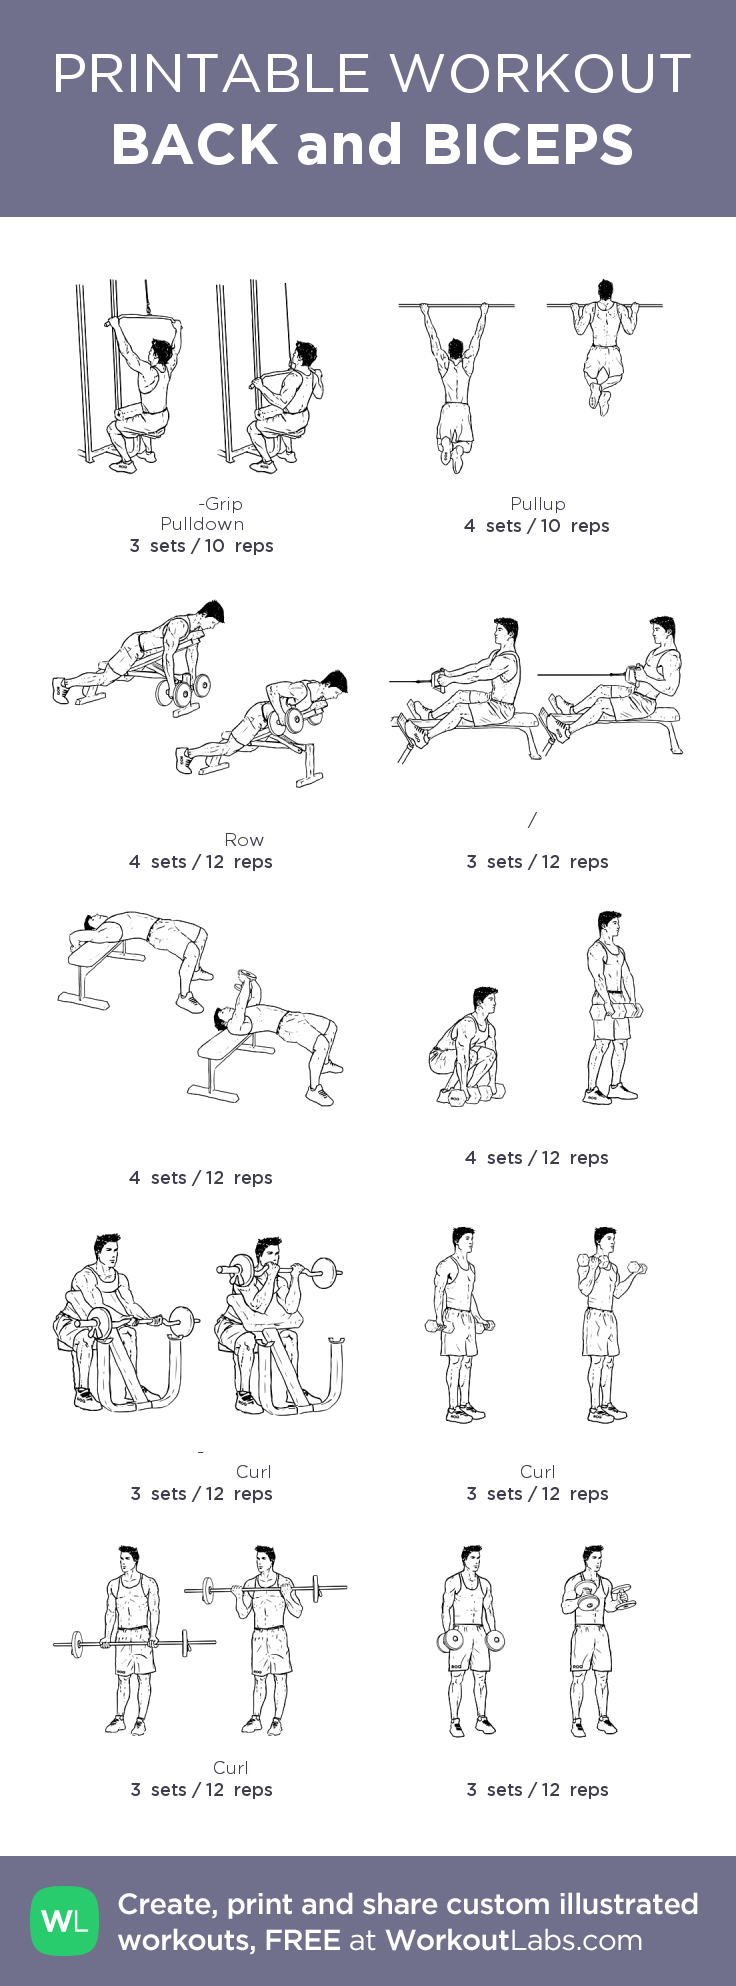 Back And Biceps My Custom Printable Workout By Workoutlabs